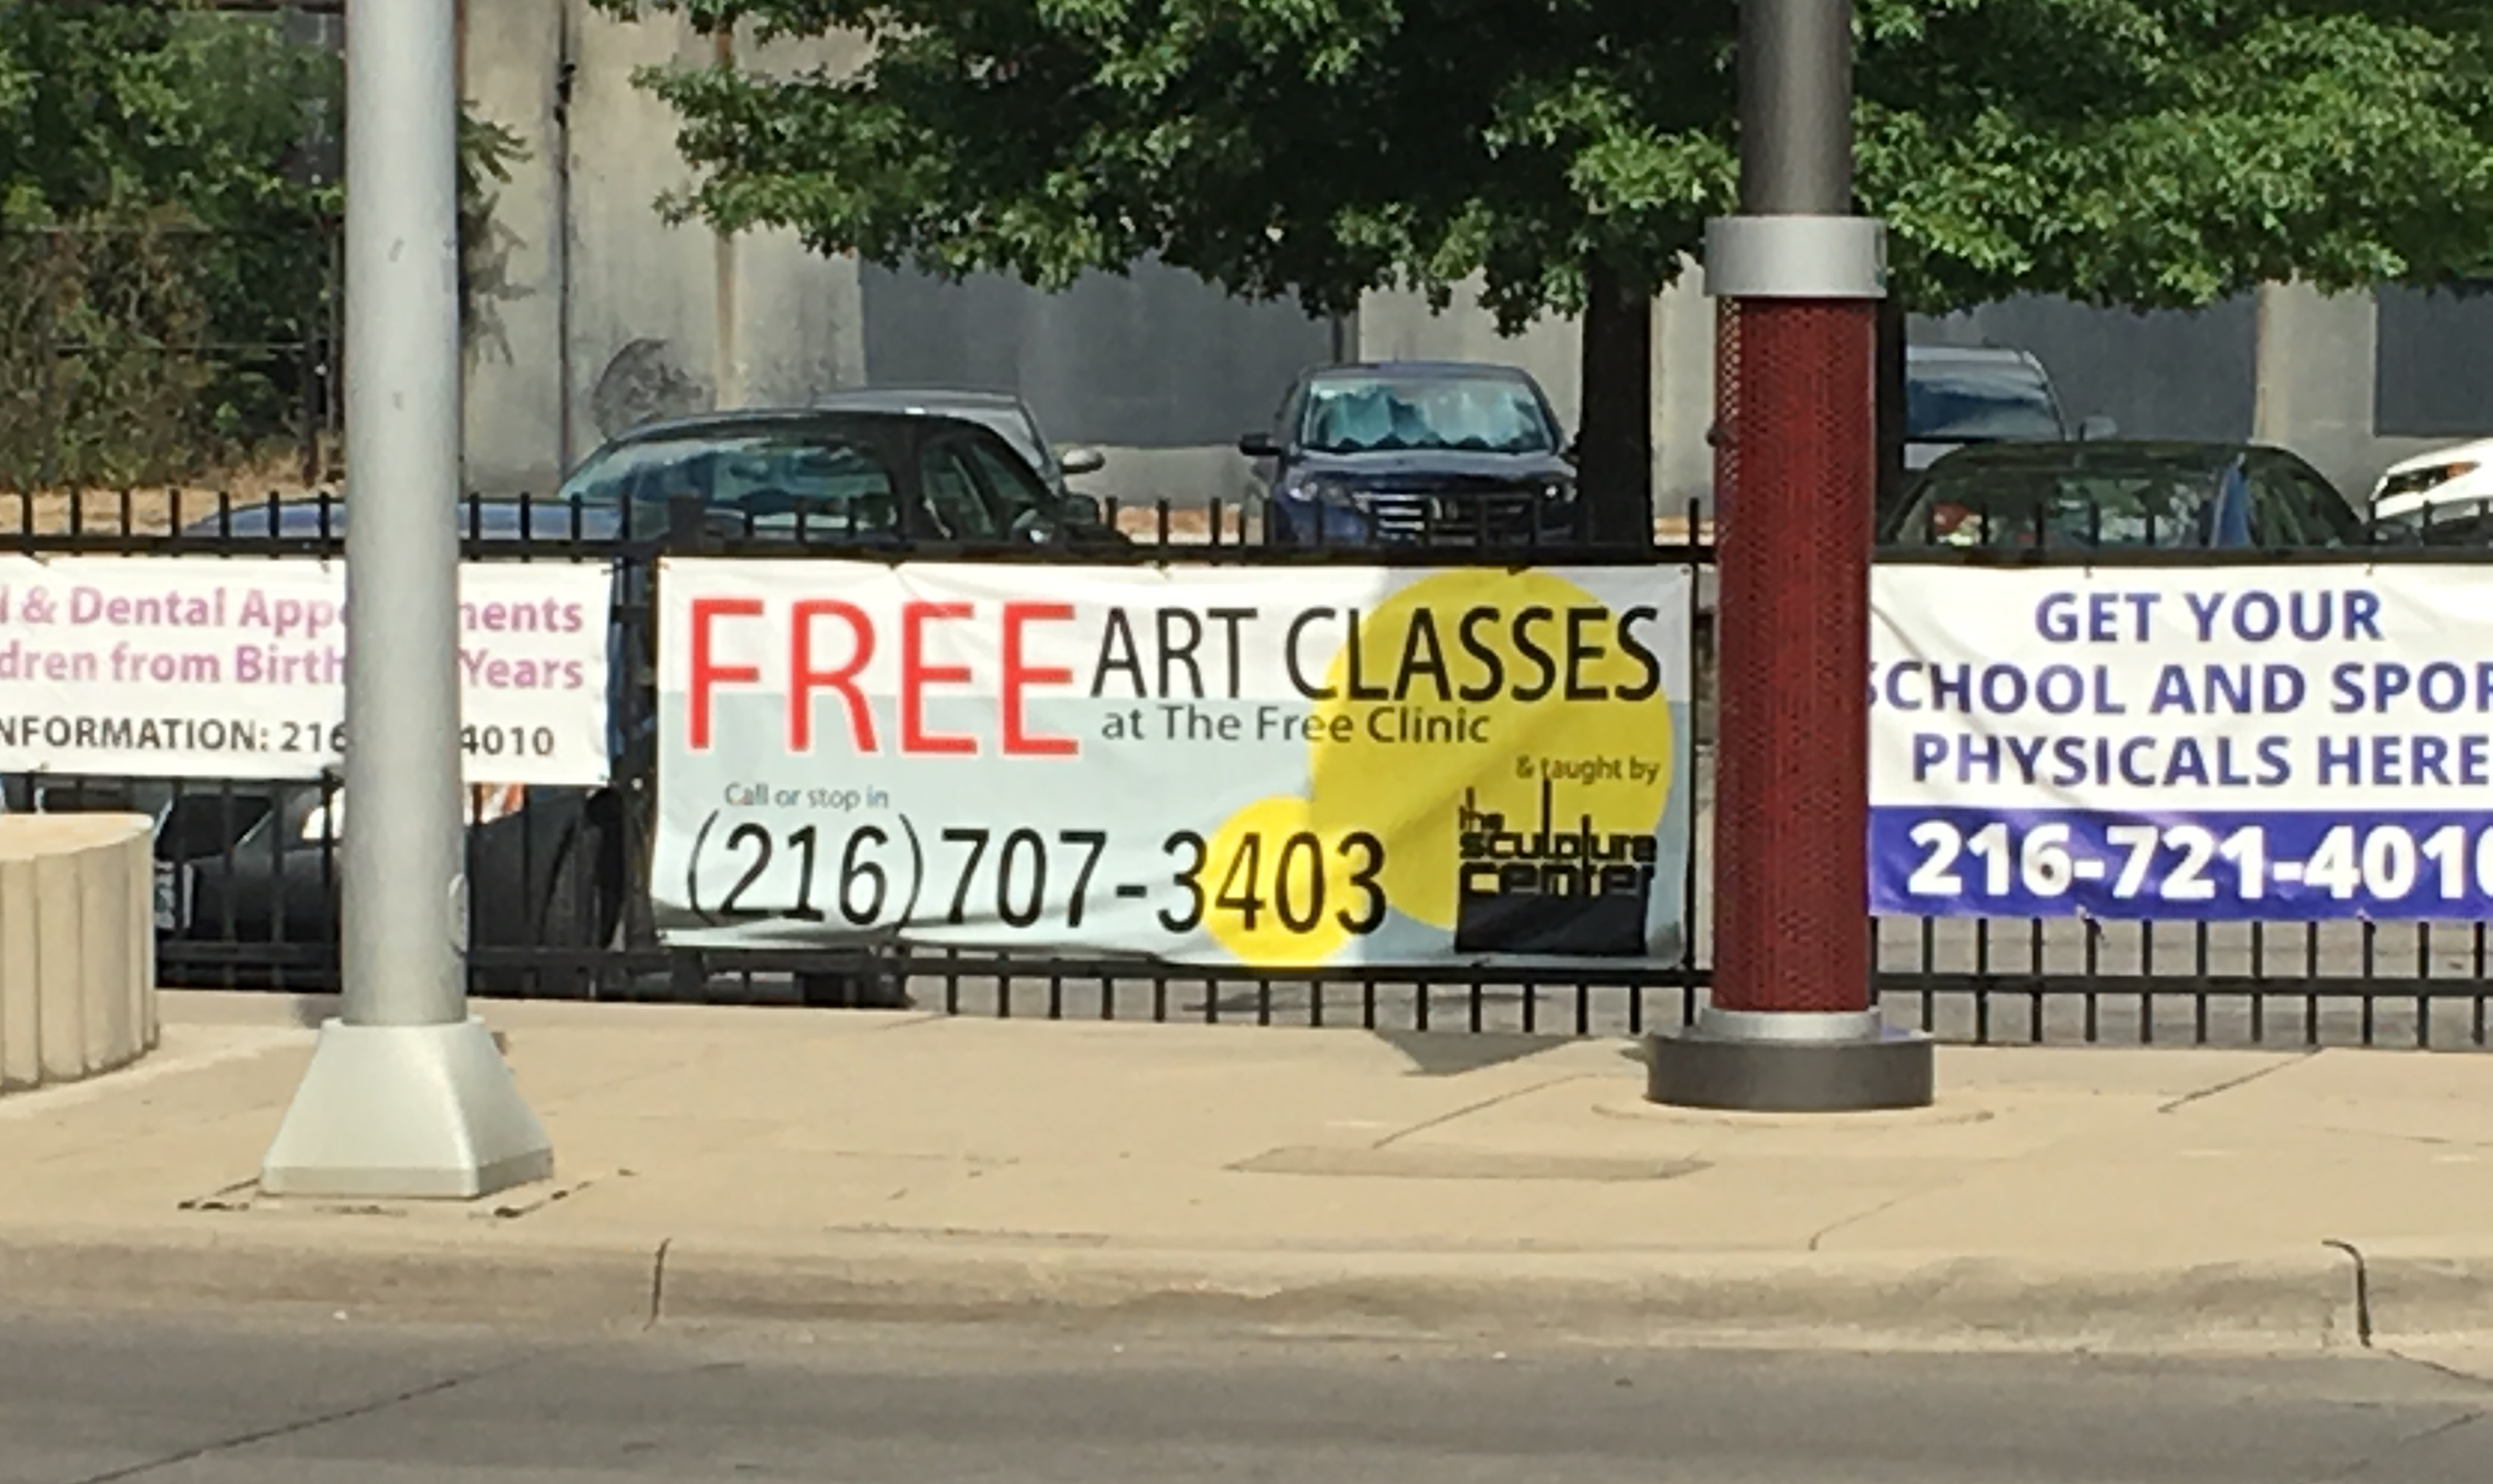 Sculpture Center free art classes at The Free Clinic